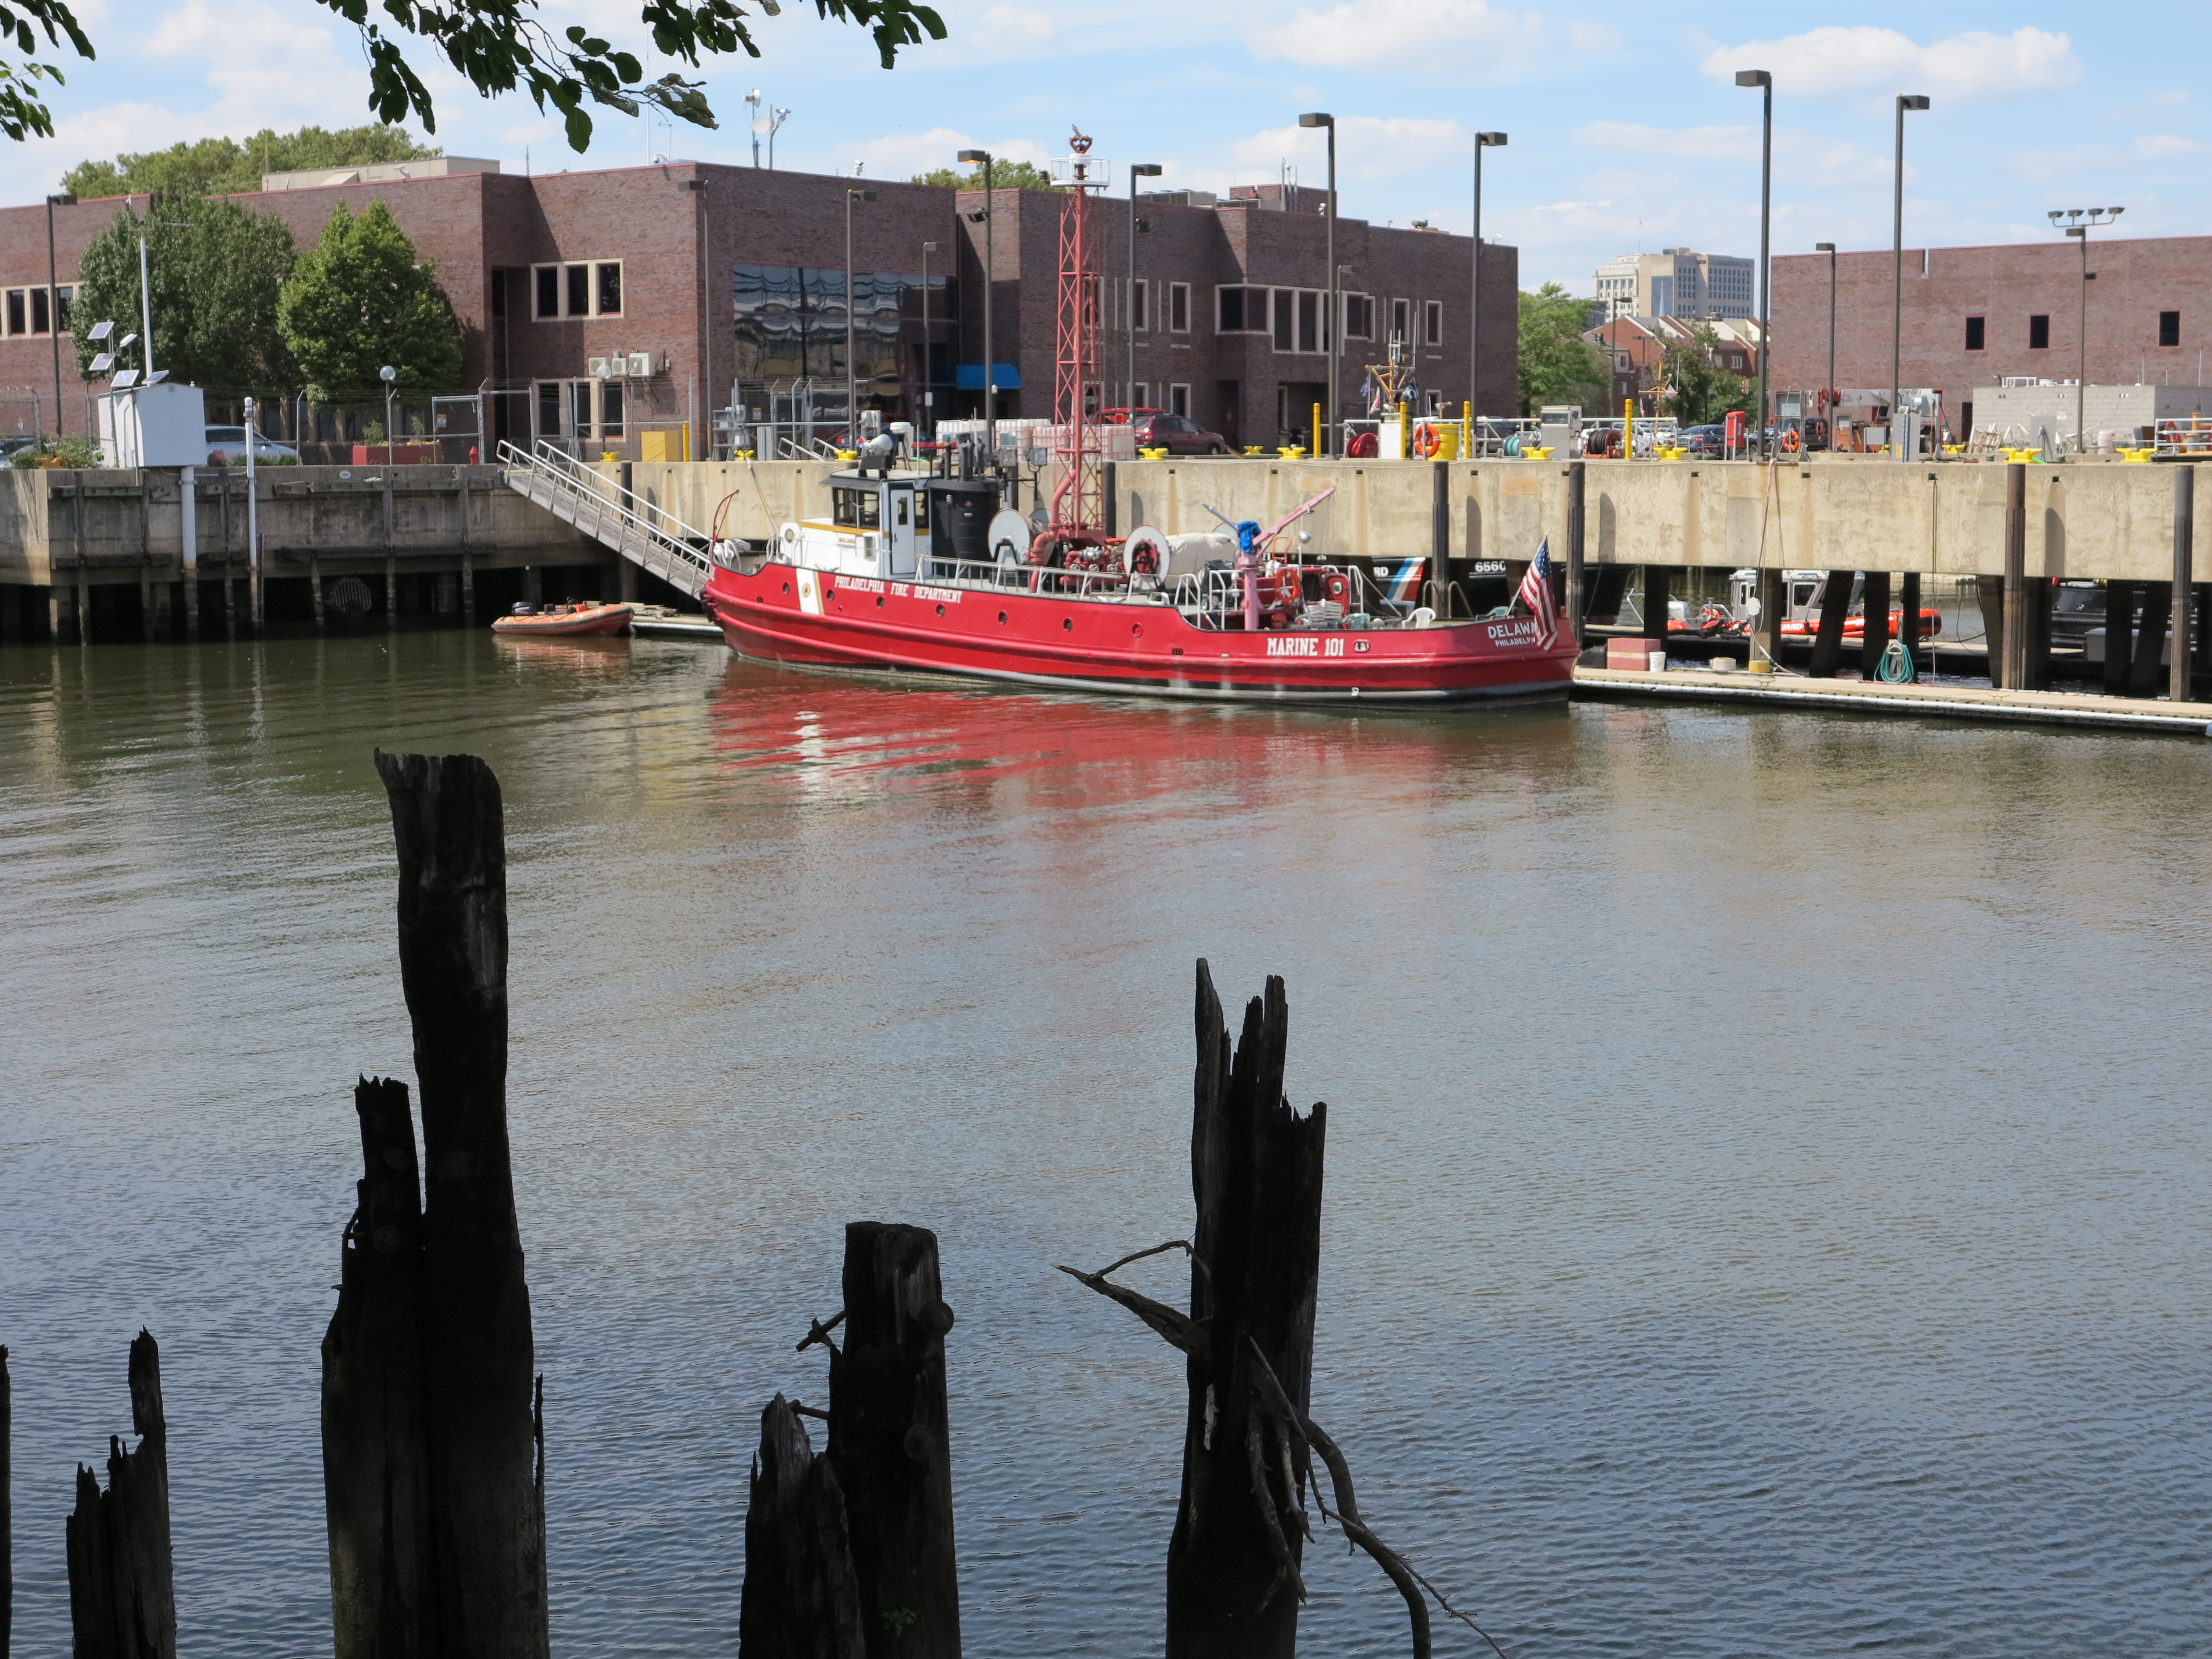 Fireboat on display